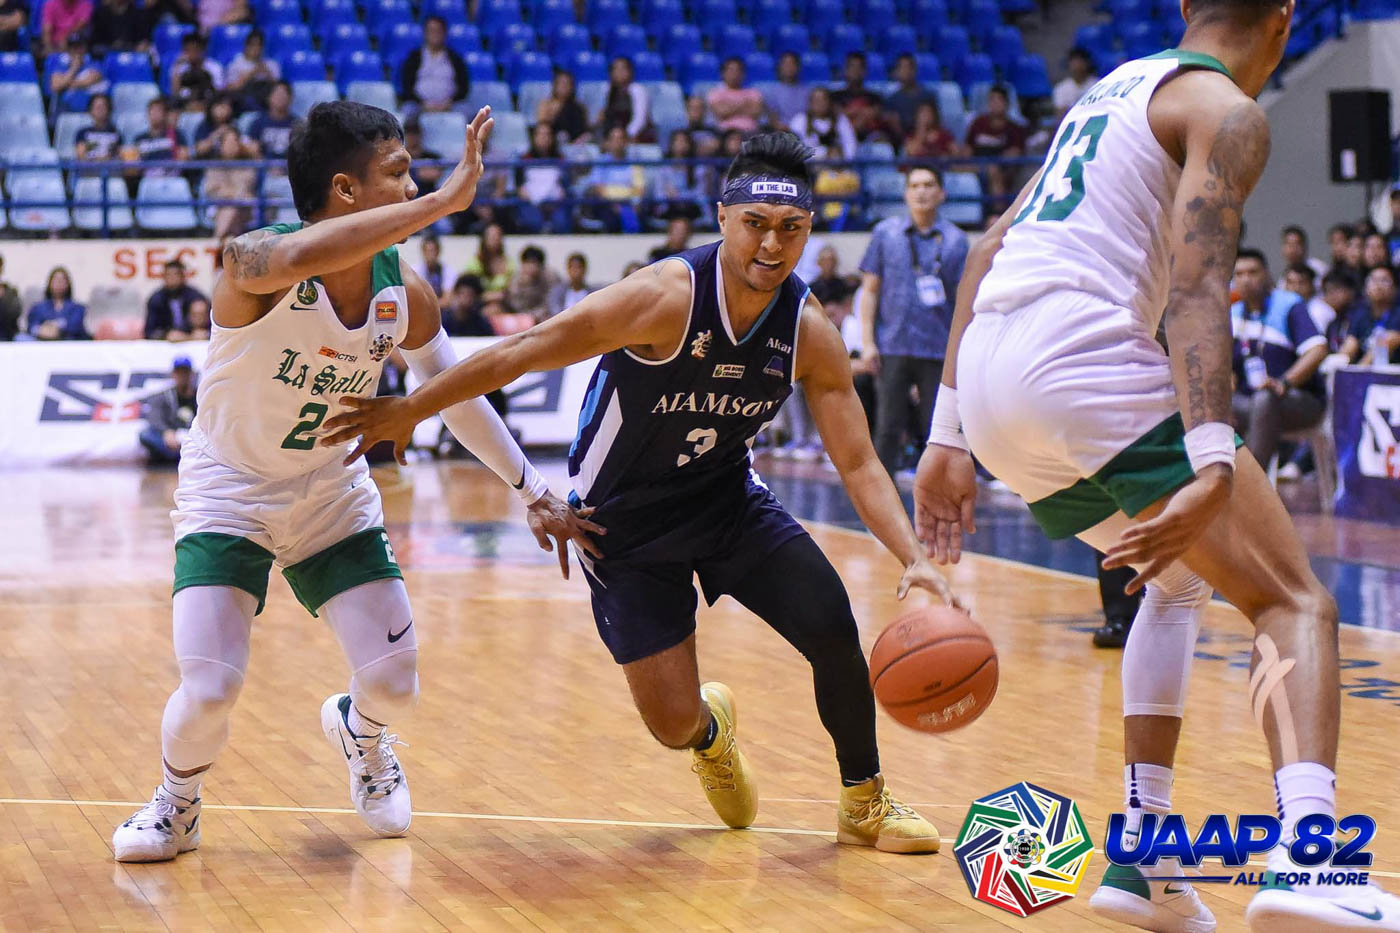 HEARTBREAKER. Adamson falls short even with Fil-Peruvian standout Val Chauca trying to carry his team in the final stretch. Photo release